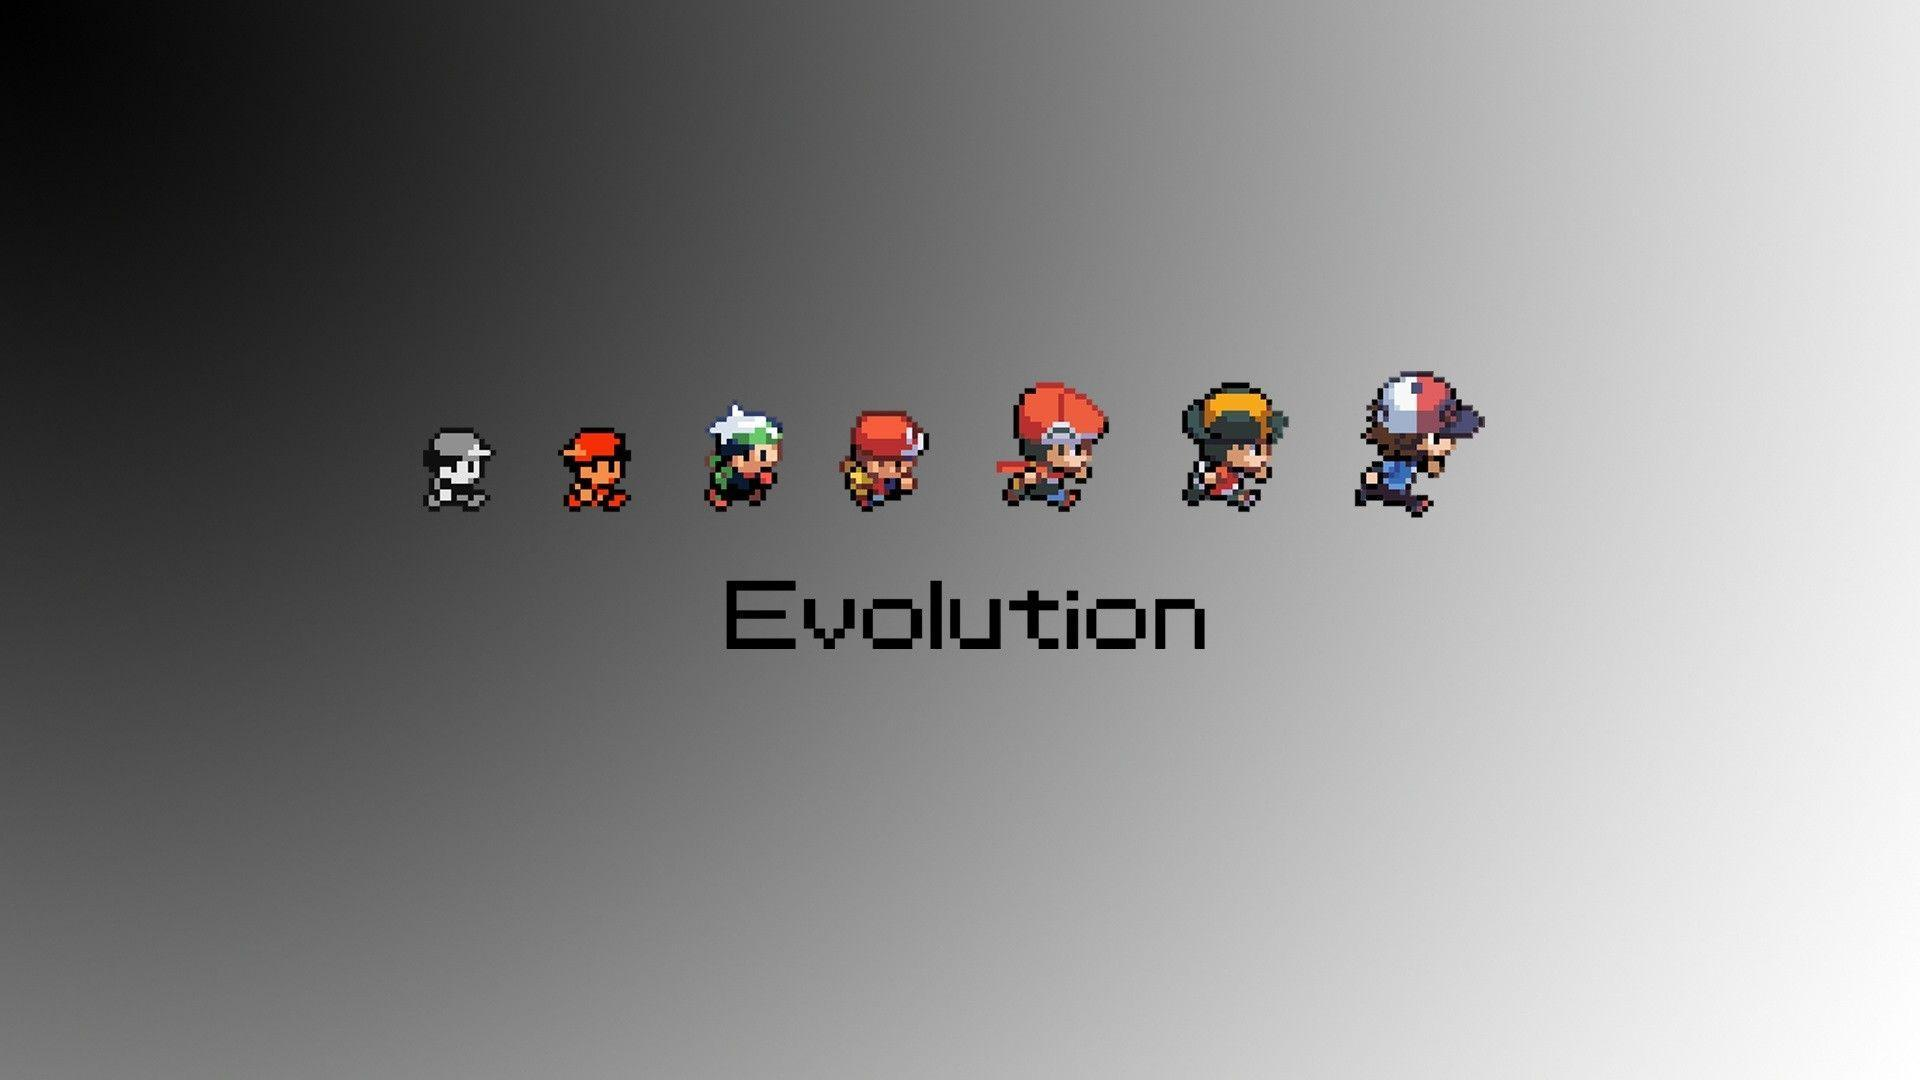 Pokemon Wallpapers 1920x1080 - Wallpaper Cave